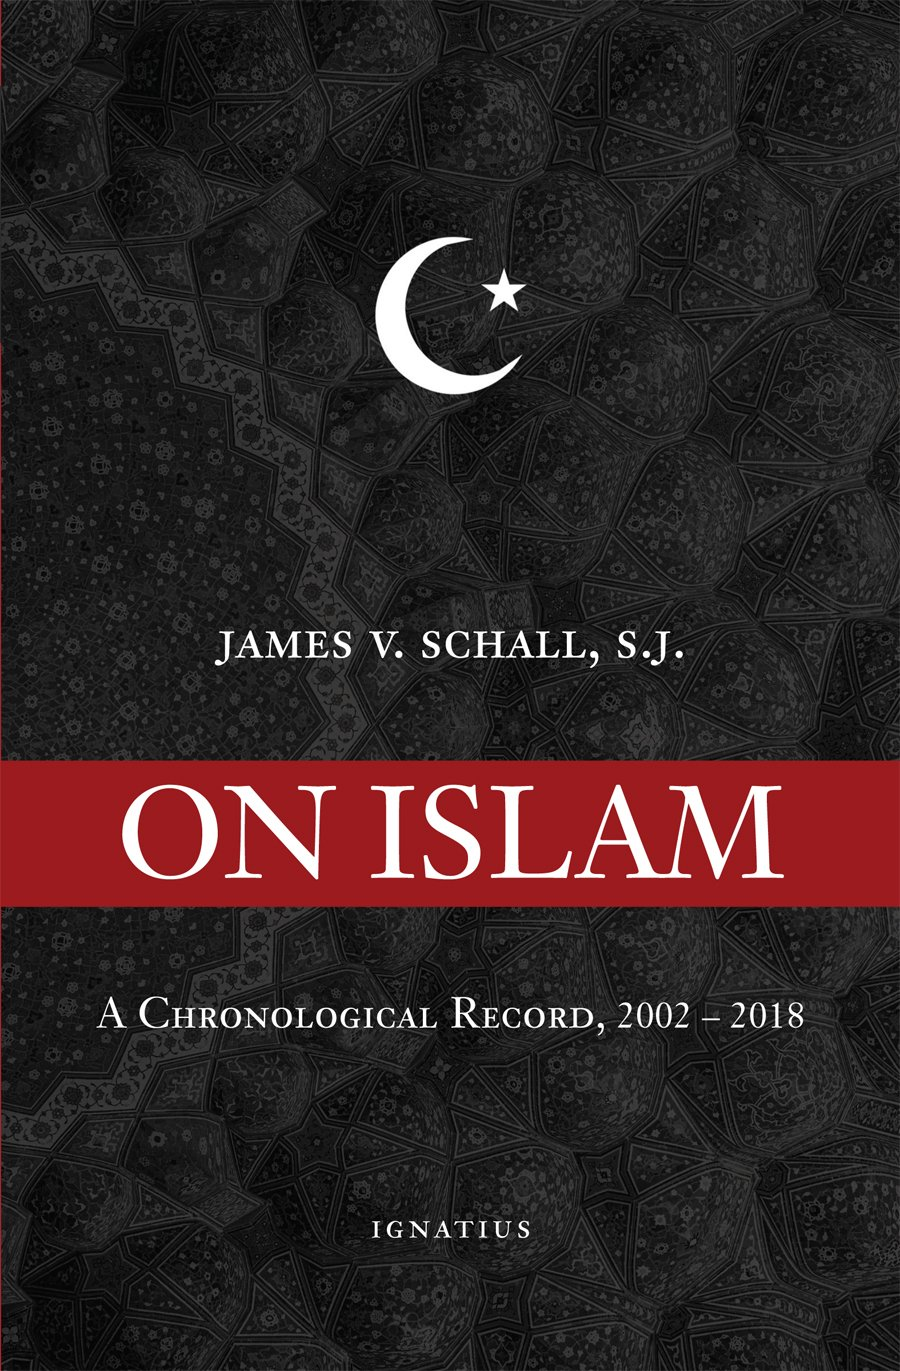 On Islam: A Chronological Record 2002-2018 PDF